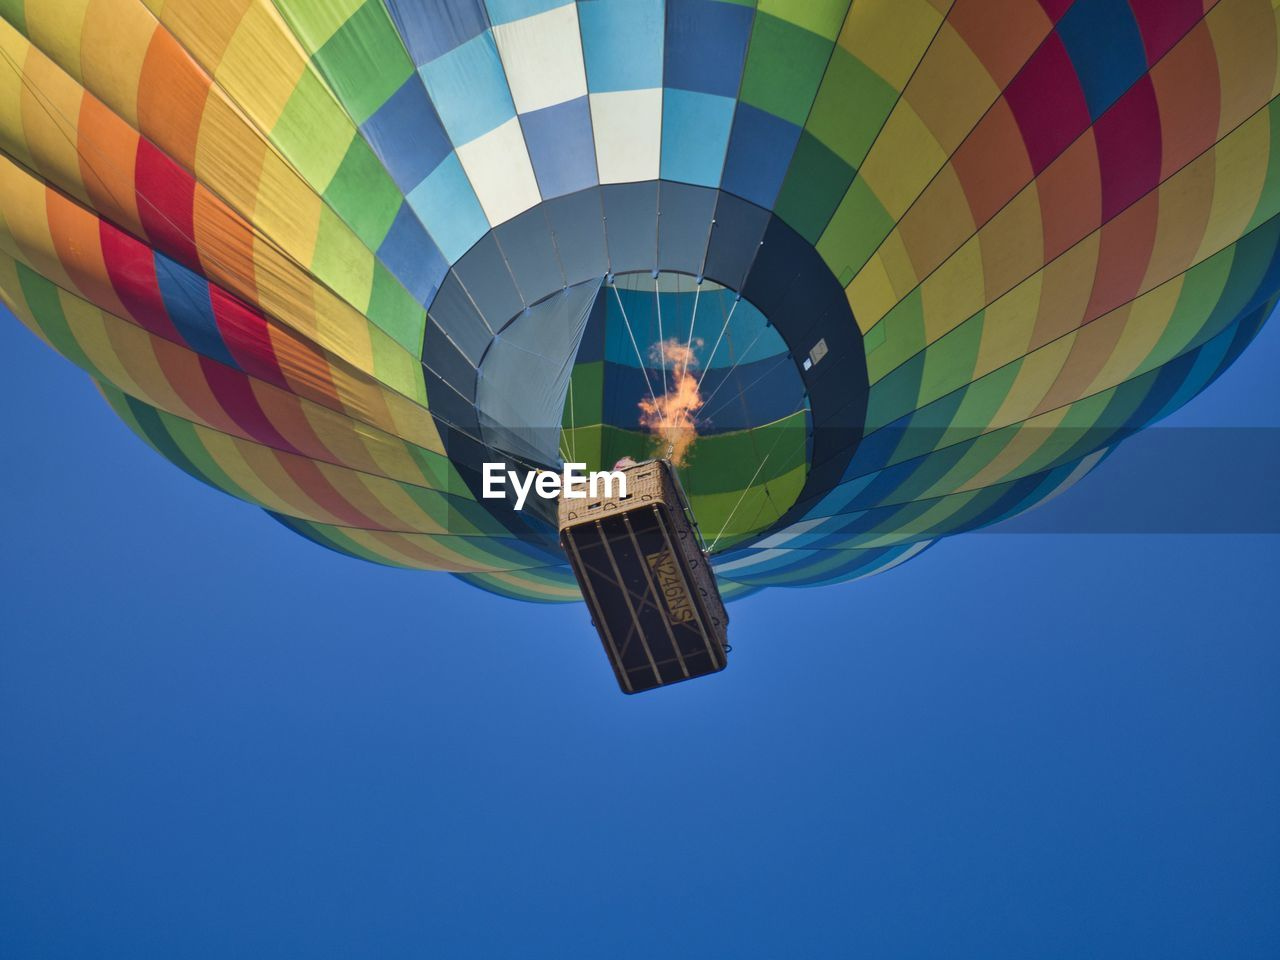 Low angle view of hot air balloon flying against clear blue sky